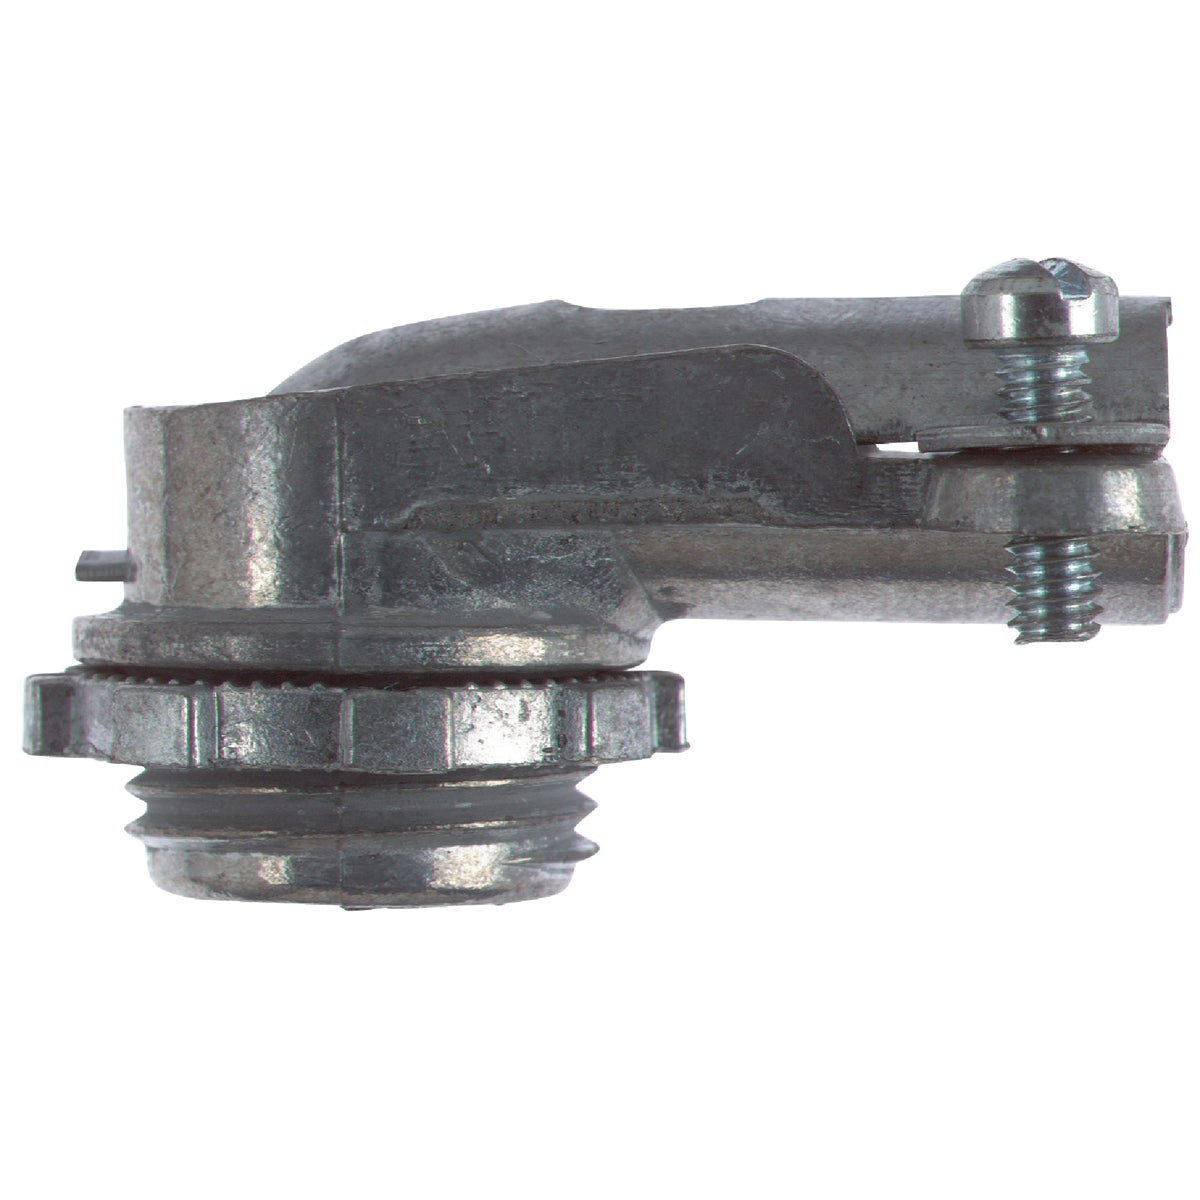 "1/2"" 90DEG CONNECTOR"